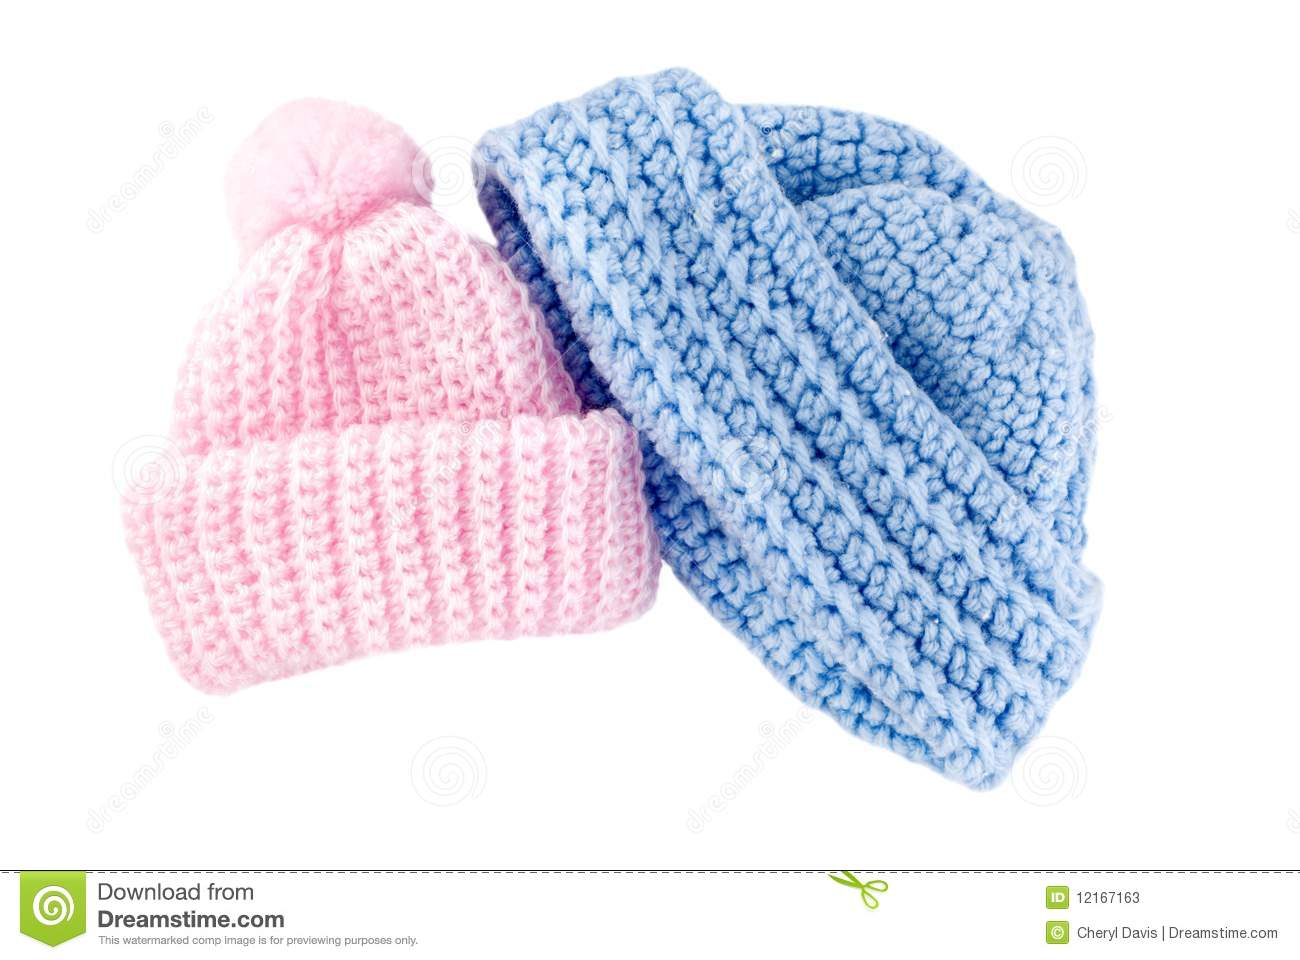 Crocheted Baby Hats For Boy And Girl Stock Image.